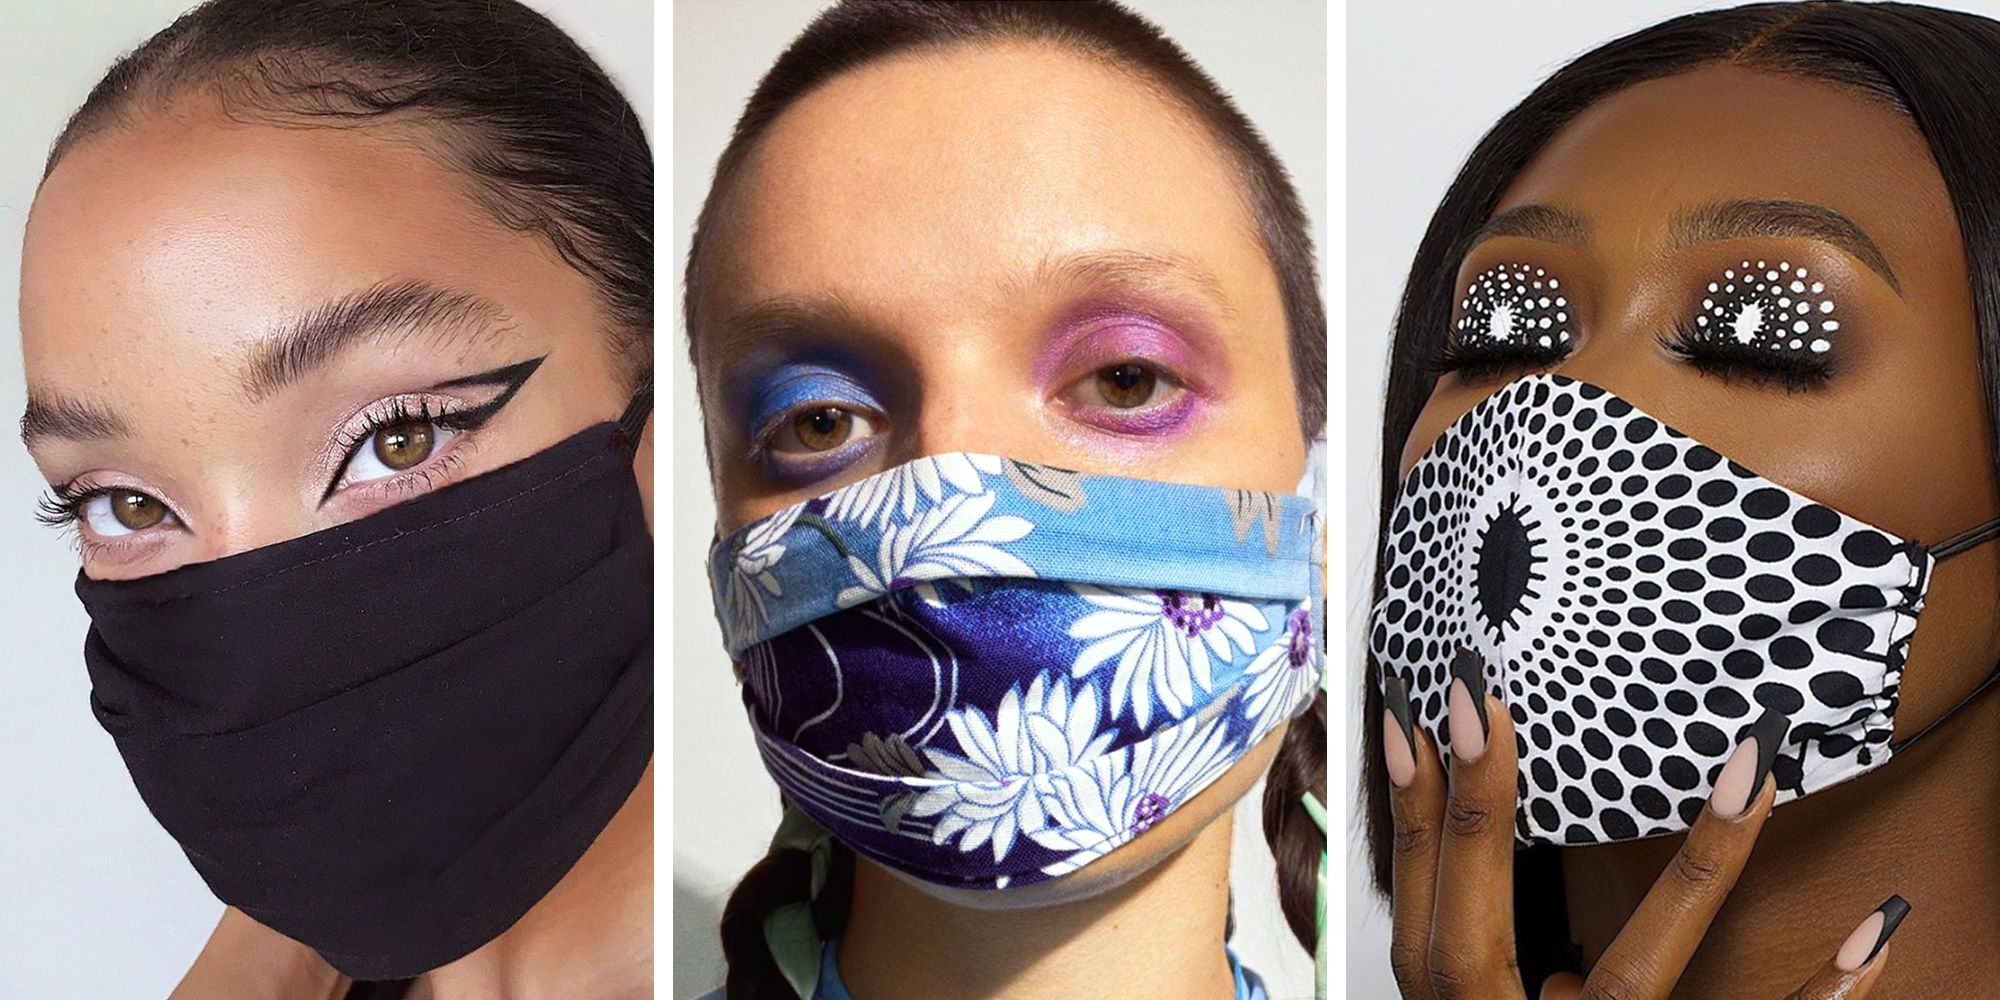 How To Match Your Mask With Makeup